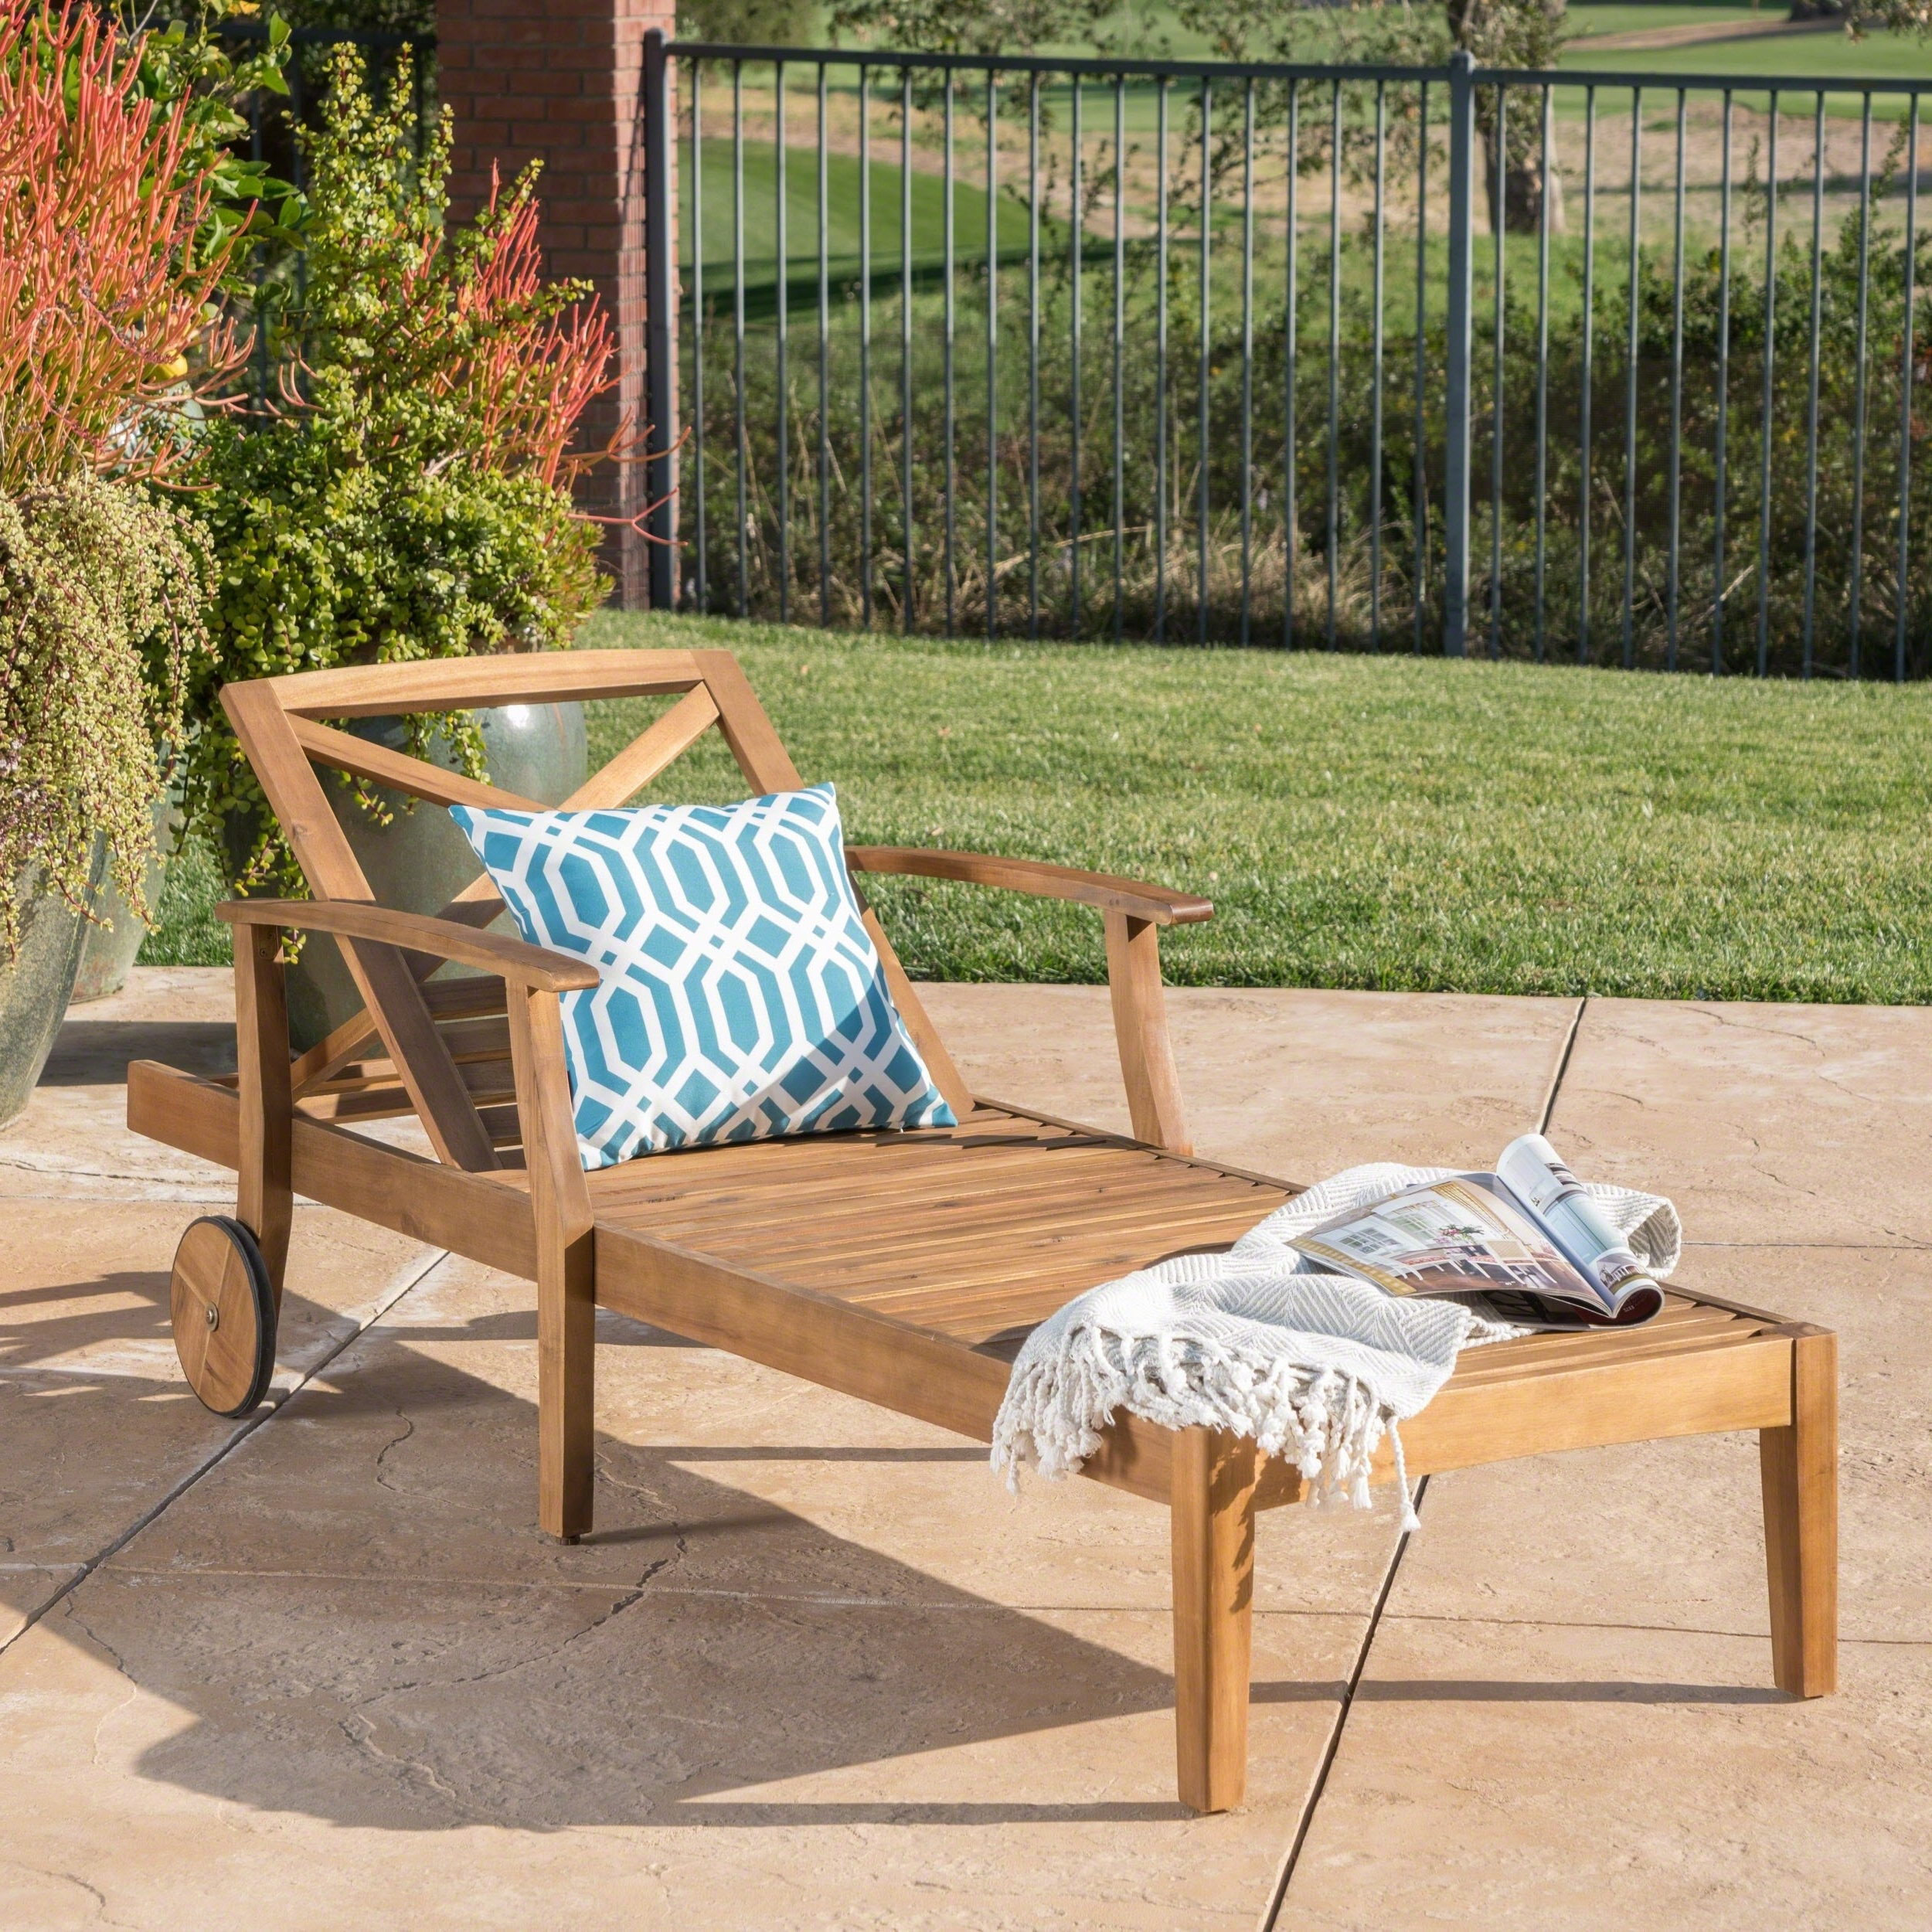 Perla Outdoor Acacia Wood Chaise Lounge With Cushion For Most Up To Date Christopher Knight Home Perla Outdoor Acacia Wood Chaise Lounge By (View 12 of 25)